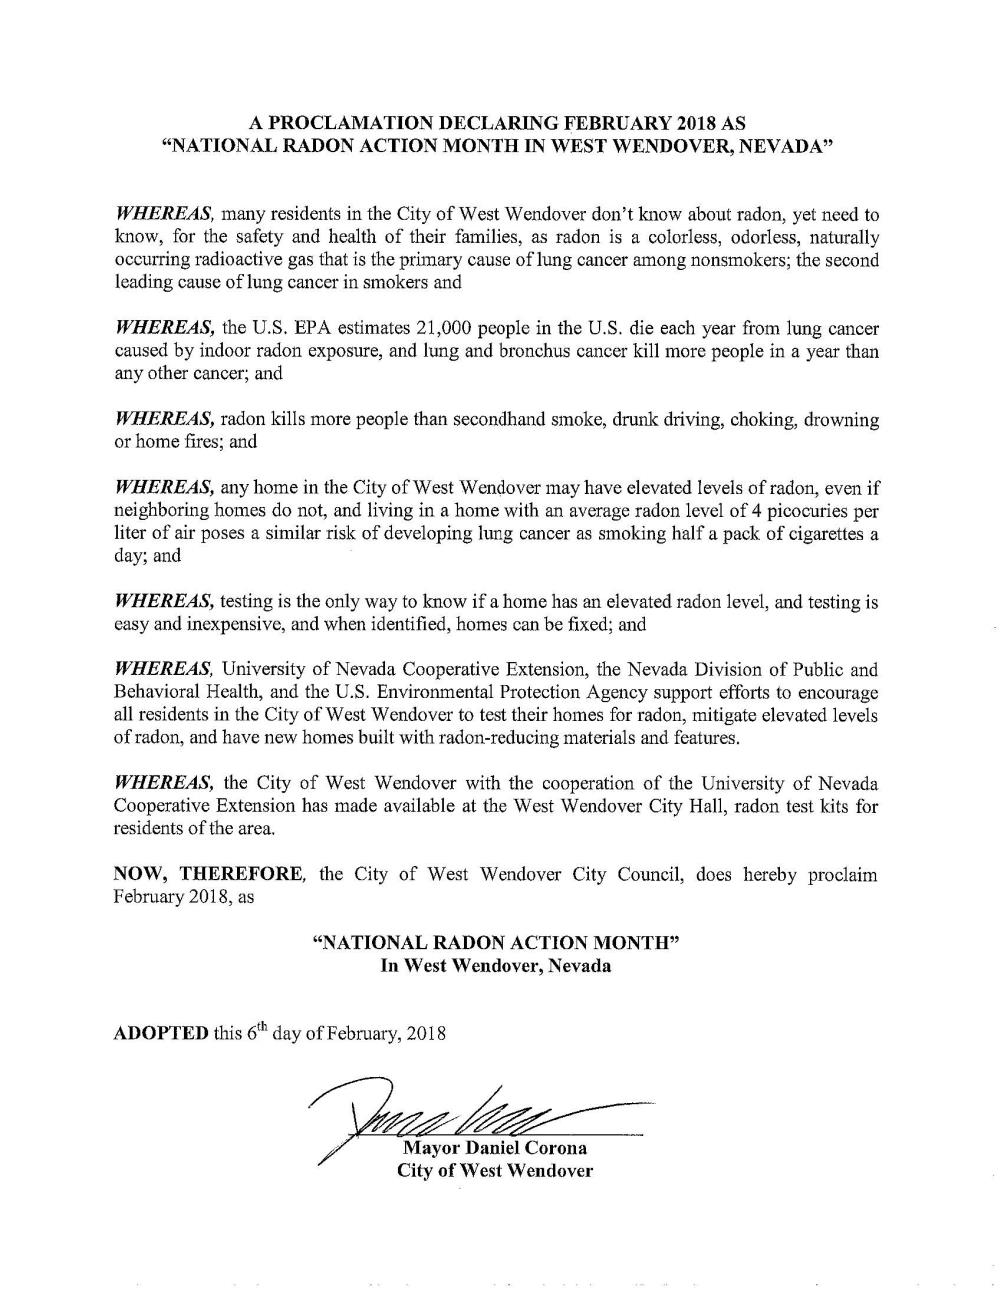 WW Proclamation - Feb 2018 National Radon Action Month